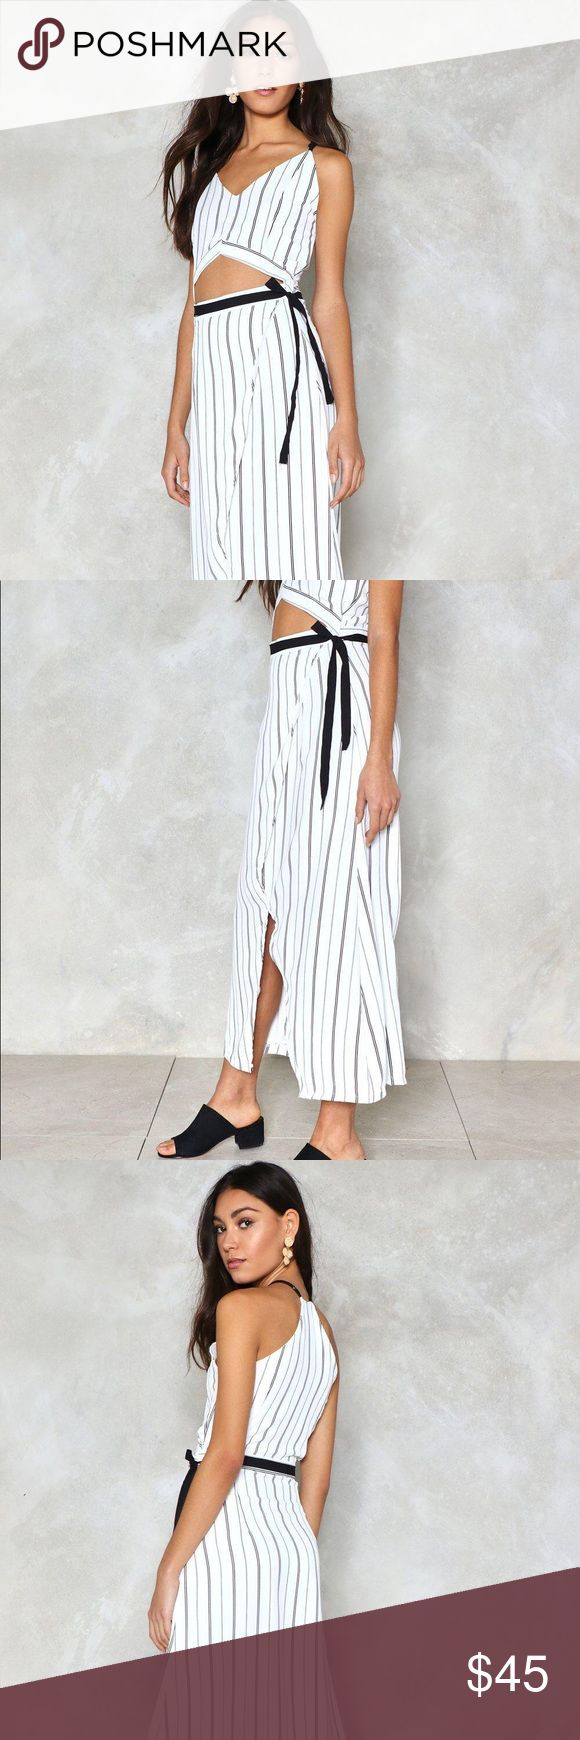 Nasty Gal- Blue and White Stripped Maxi Dress Amazing dress, so flowy and lightweight! Beautiful cutout in the front with navy blue ribbon detail. Slit up the side that's super flattering. Brand new Nasty Gal Dresses Maxi